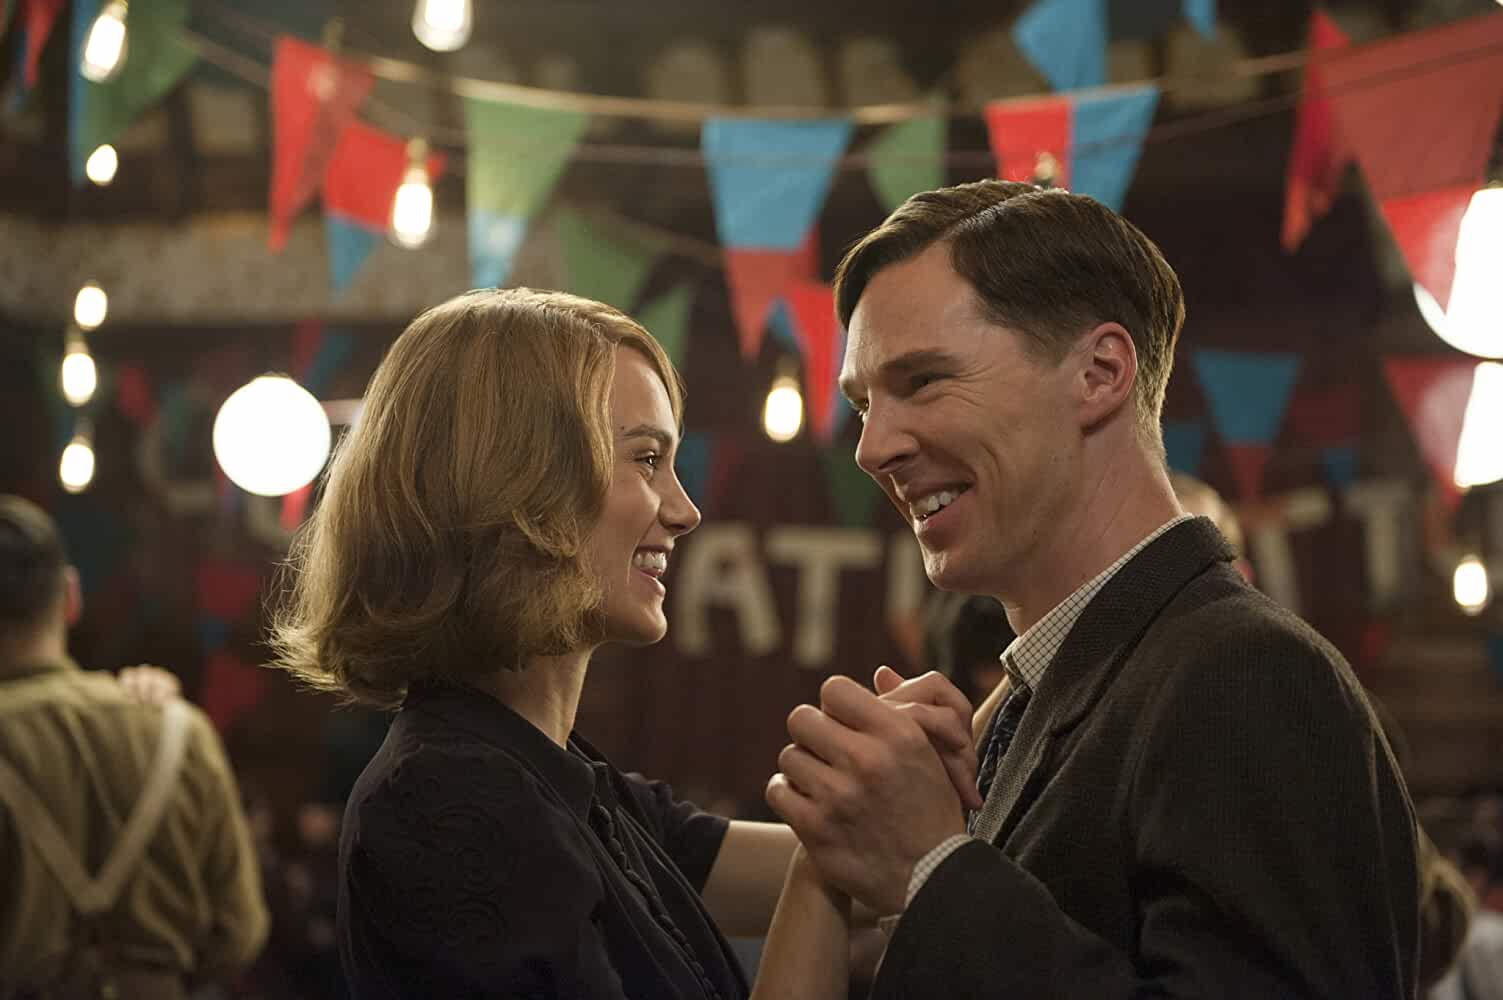 Keira Knightley and Benedict Cumberbatch in The Imitation Game 2014